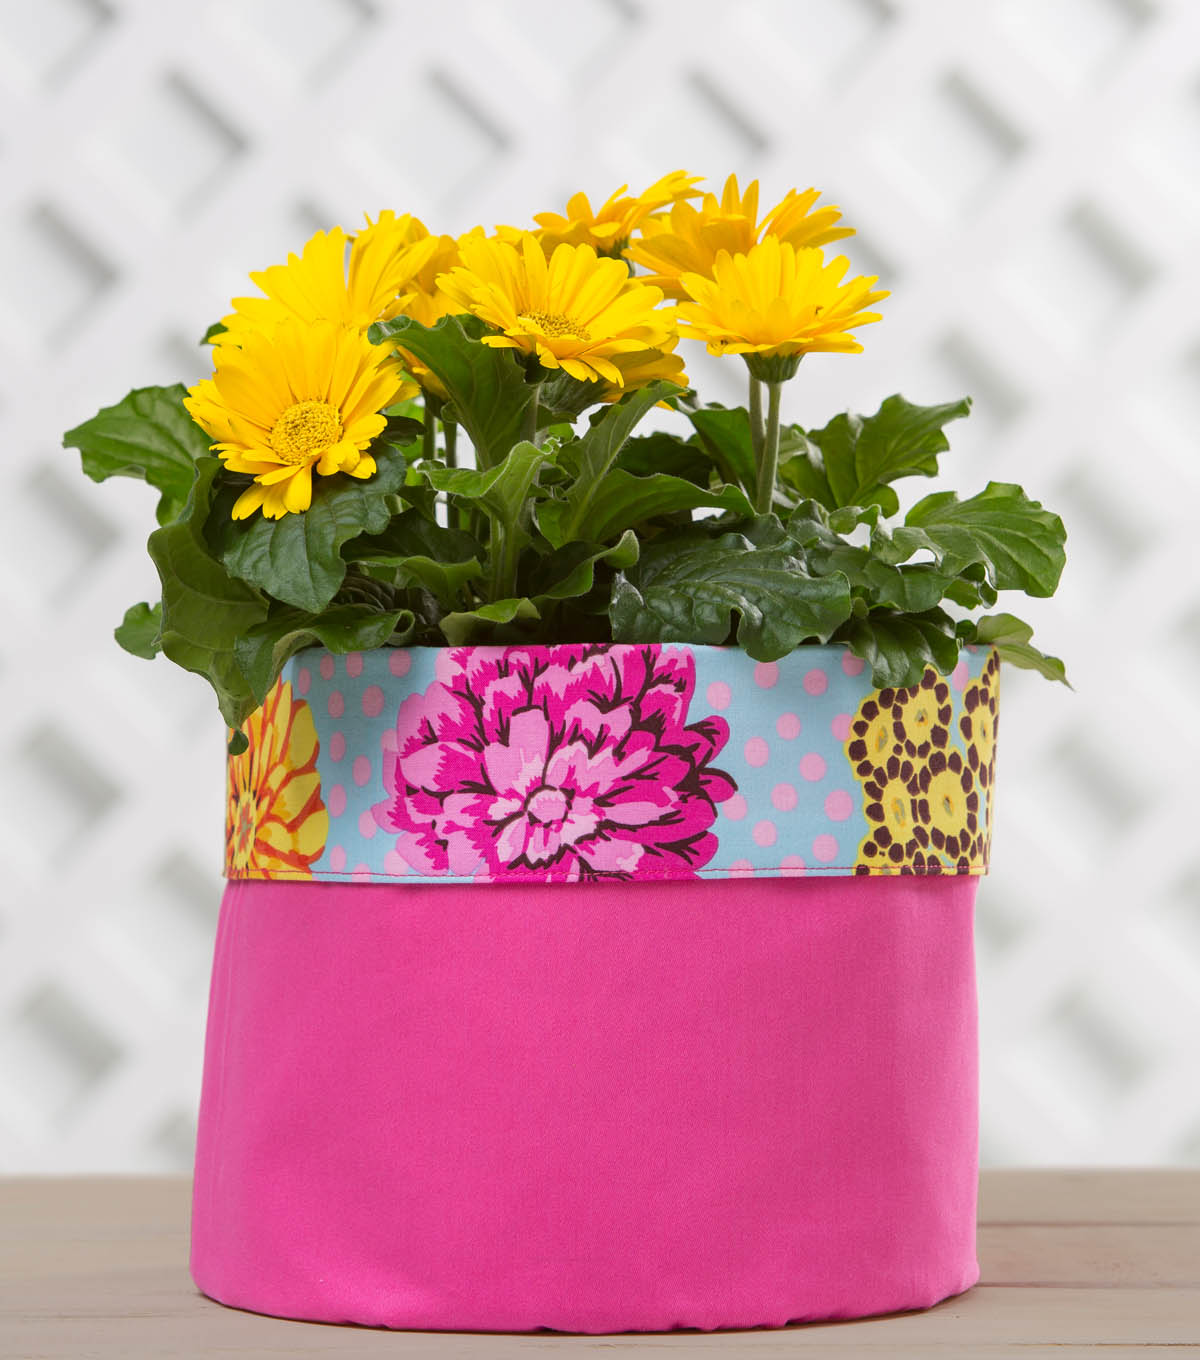 How To Make A Flower Pot Cover